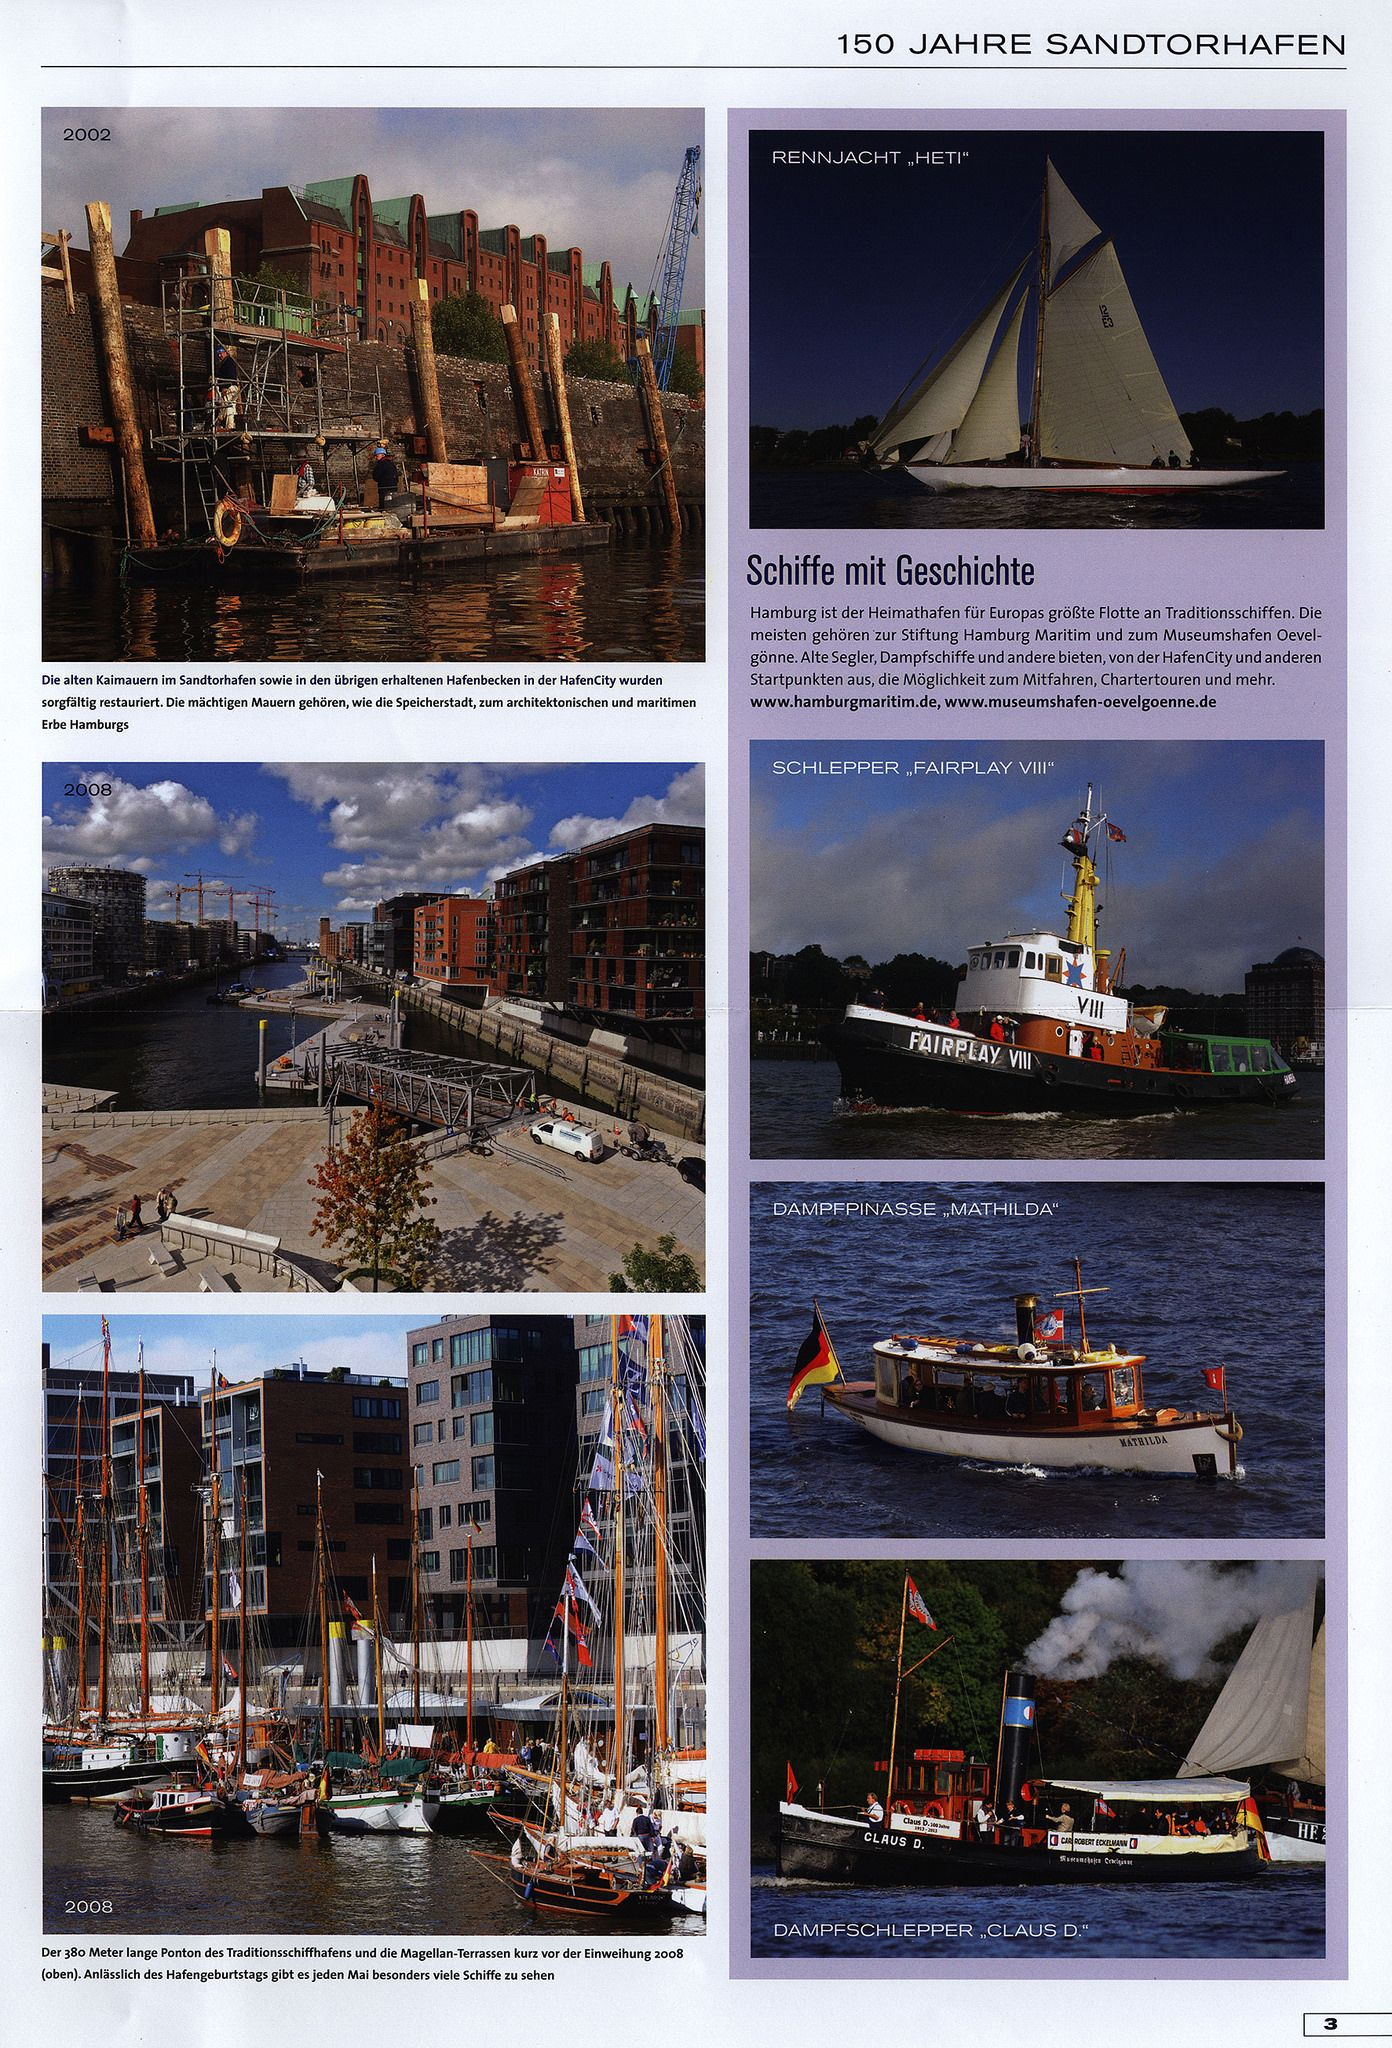 https://flic.kr/p/K8MtnA | Hafencity Hamburg NewsExtra - 150 Jahre Sandtorhafen, Juni 2016_3  (43. Ausgabe); Germany | 150 years Sandtorhafen (a district in HafenCity Hamburg)